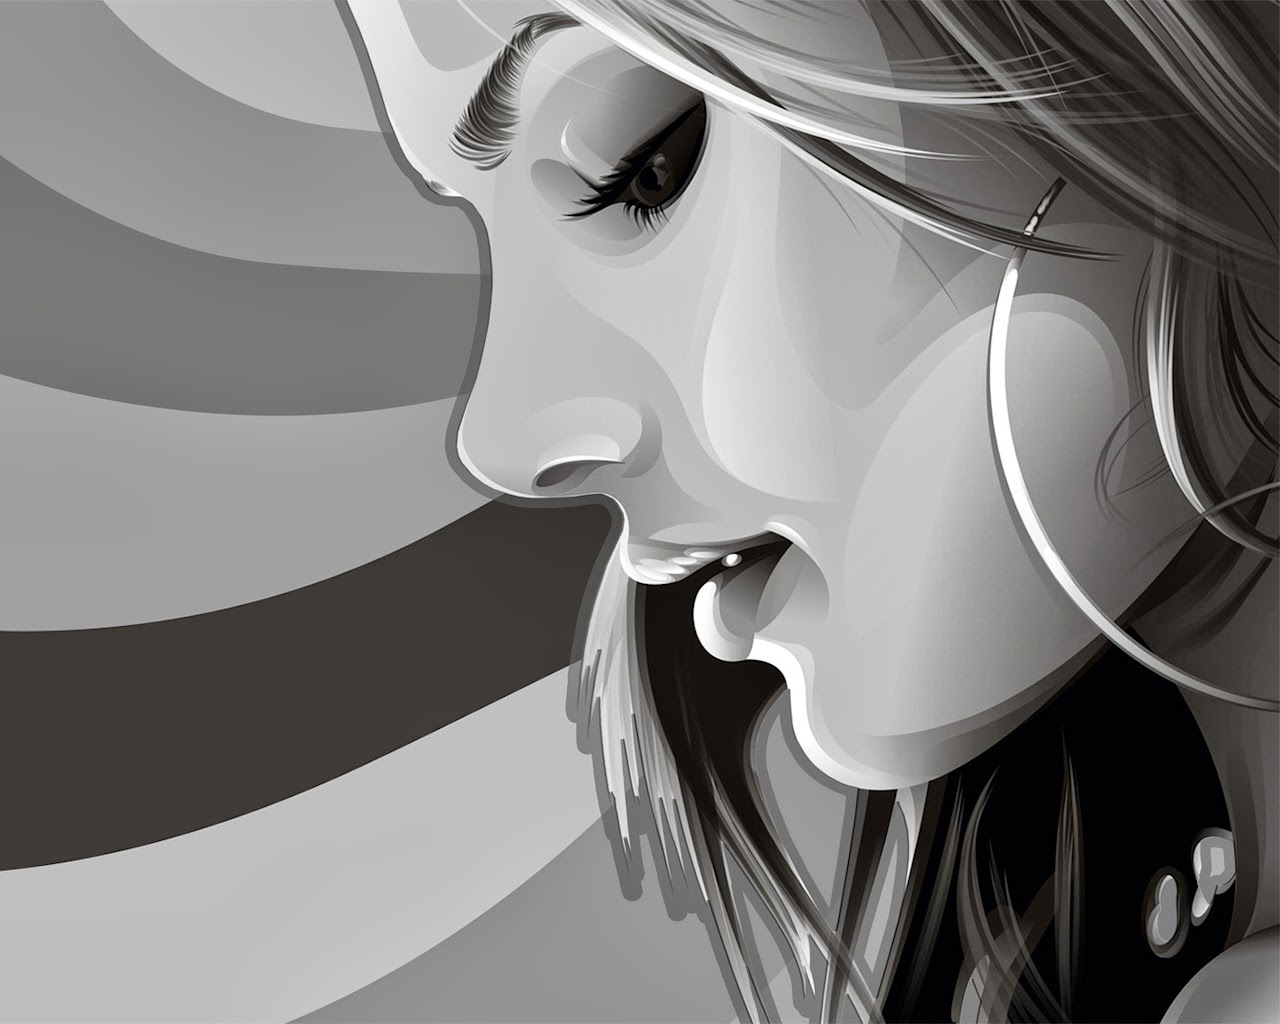 This is the alone lonely drawing bordel girl wallpaper picture and layout